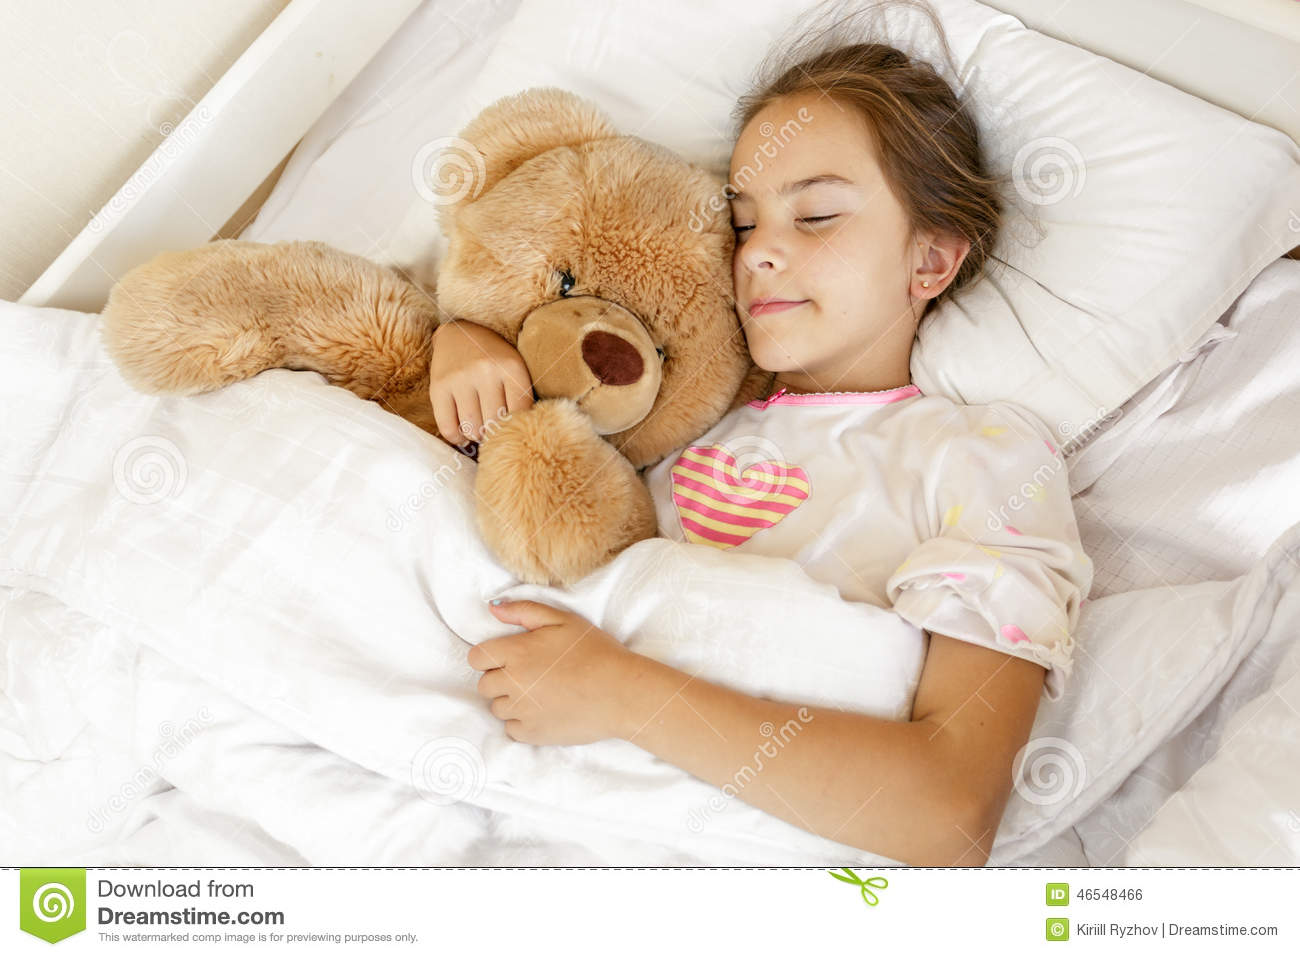 Cute Girl Sleeping And Hugging Big Teddy Bear At Bed Stock